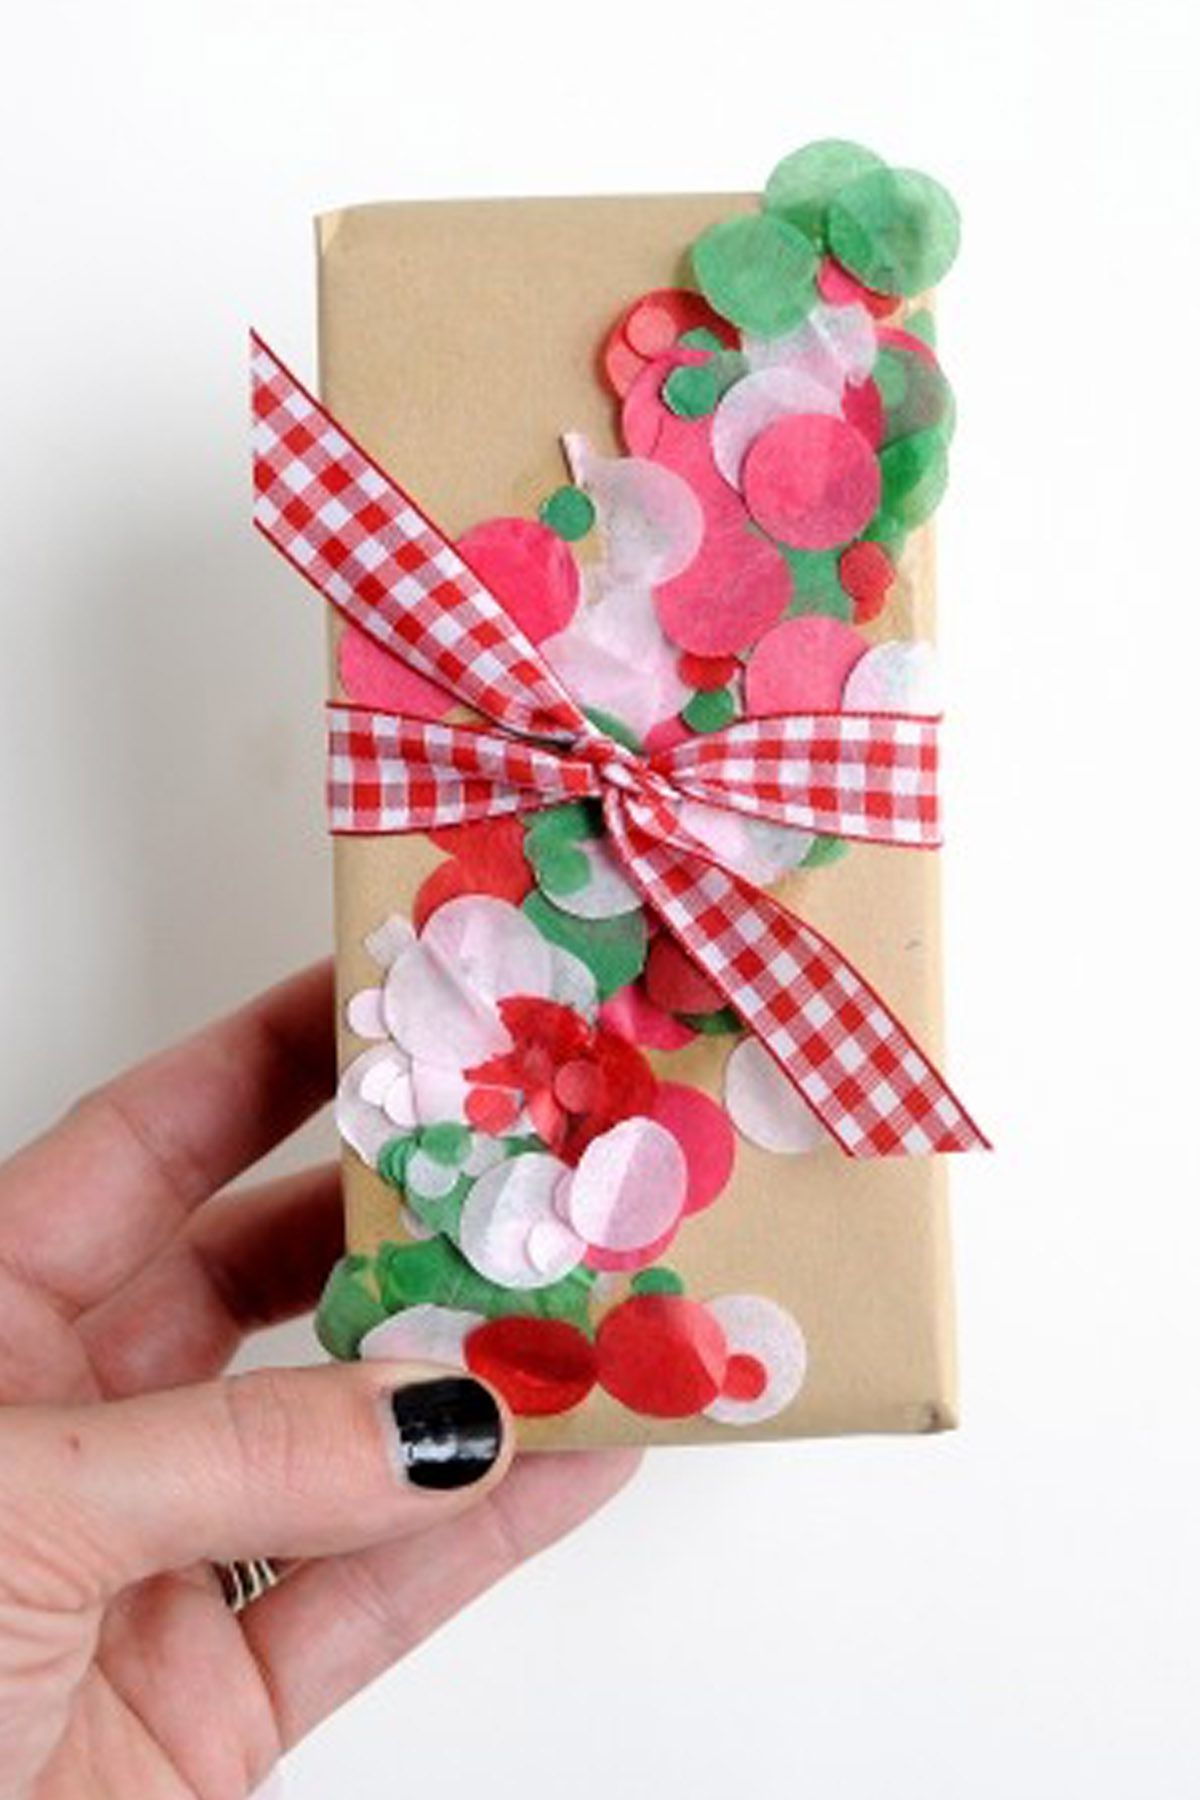 Handmade Paper Craft Gifts You can Make Right Now 45 Christmas Gift Wrapping Ideas Creative Diy Holiday Gift Wrap